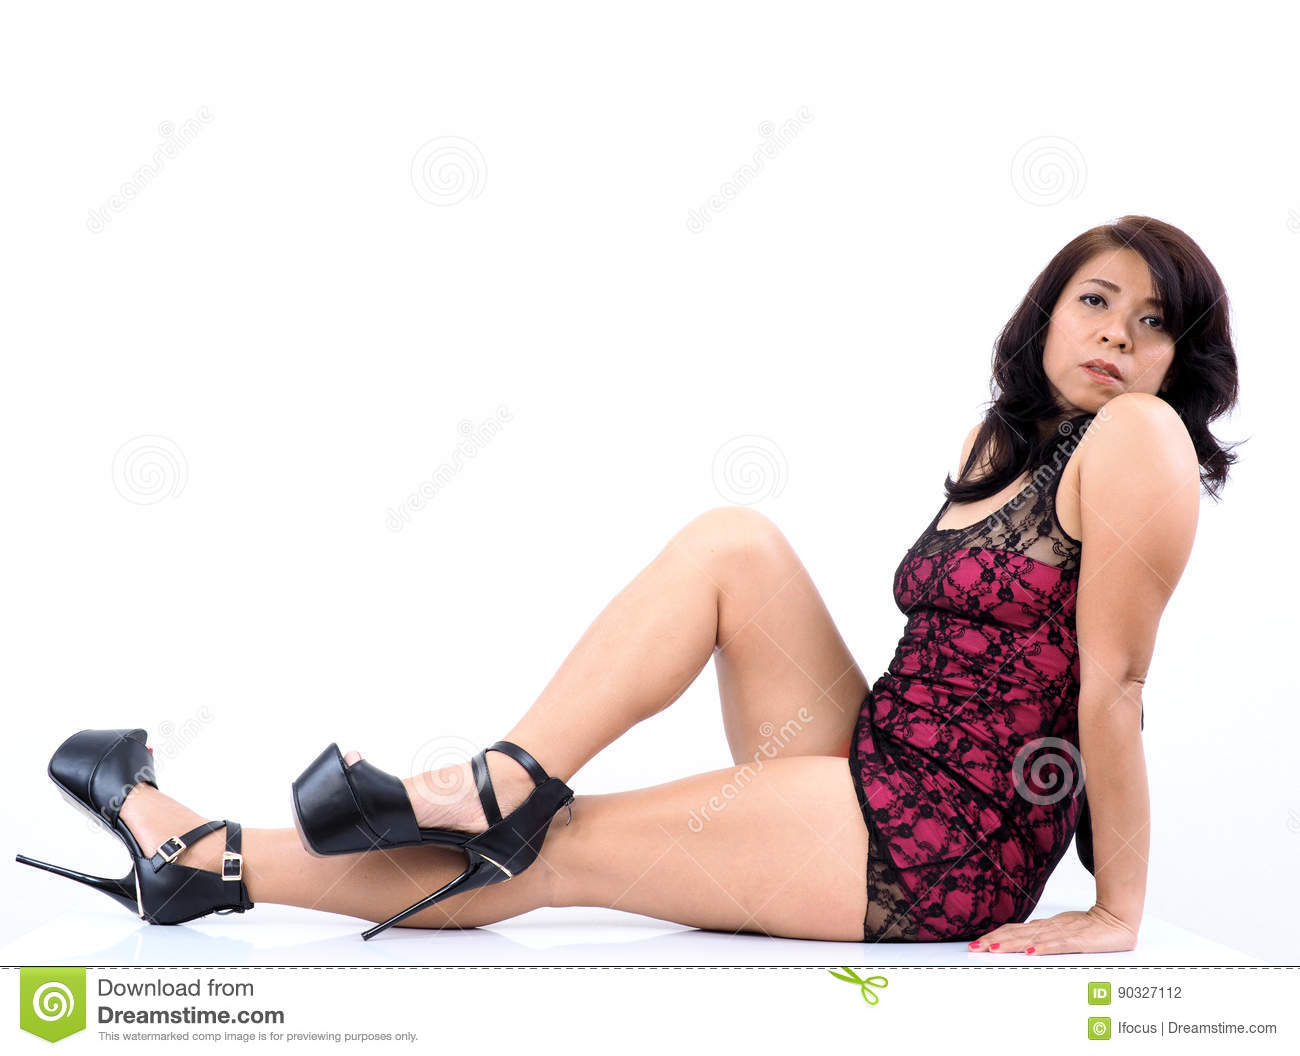 asian woman in sleepwear and high heels stock photo - image of